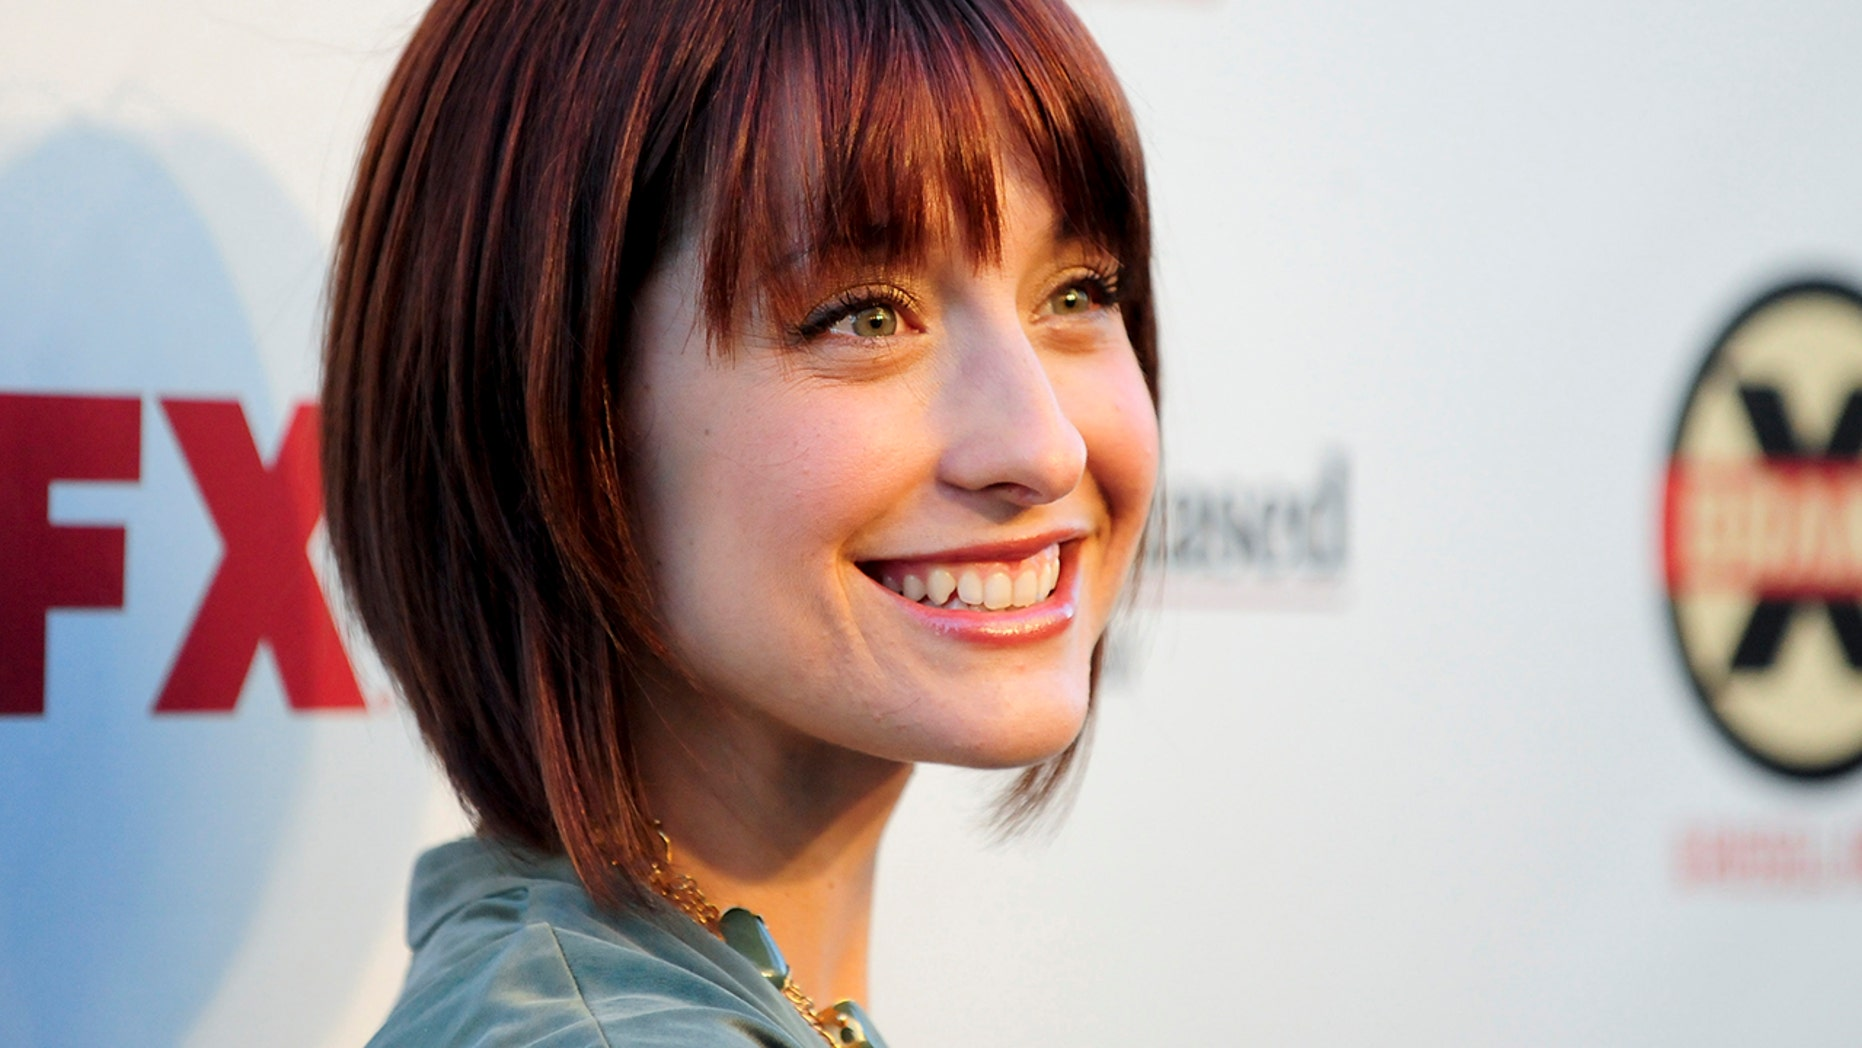 Actress Allison Mack arrives at the Hollywood FX Summer Comedies Party in Los Angeles, California June 26, 2012.